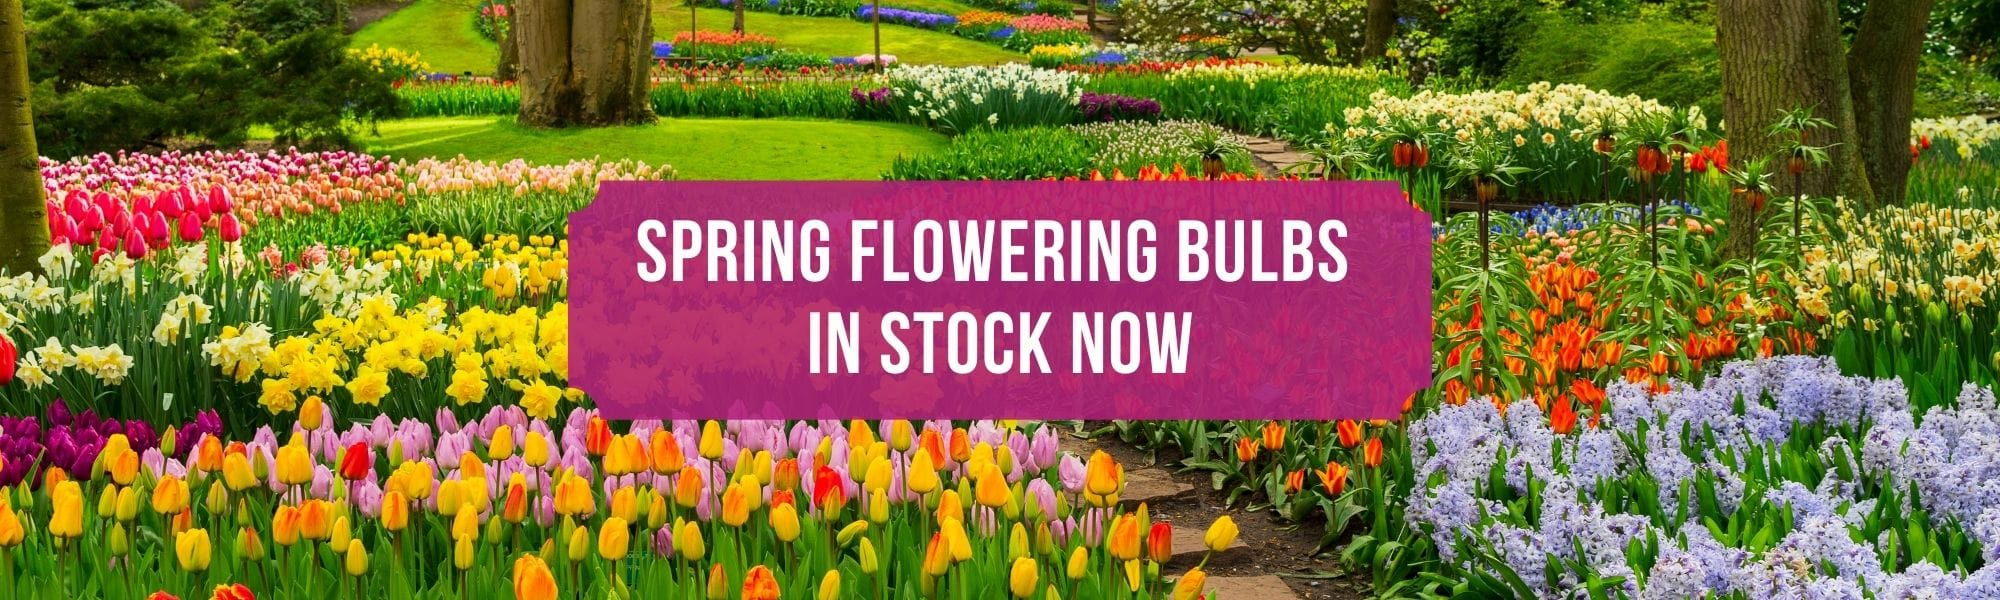 Spring Flowering Bulbs Available Now